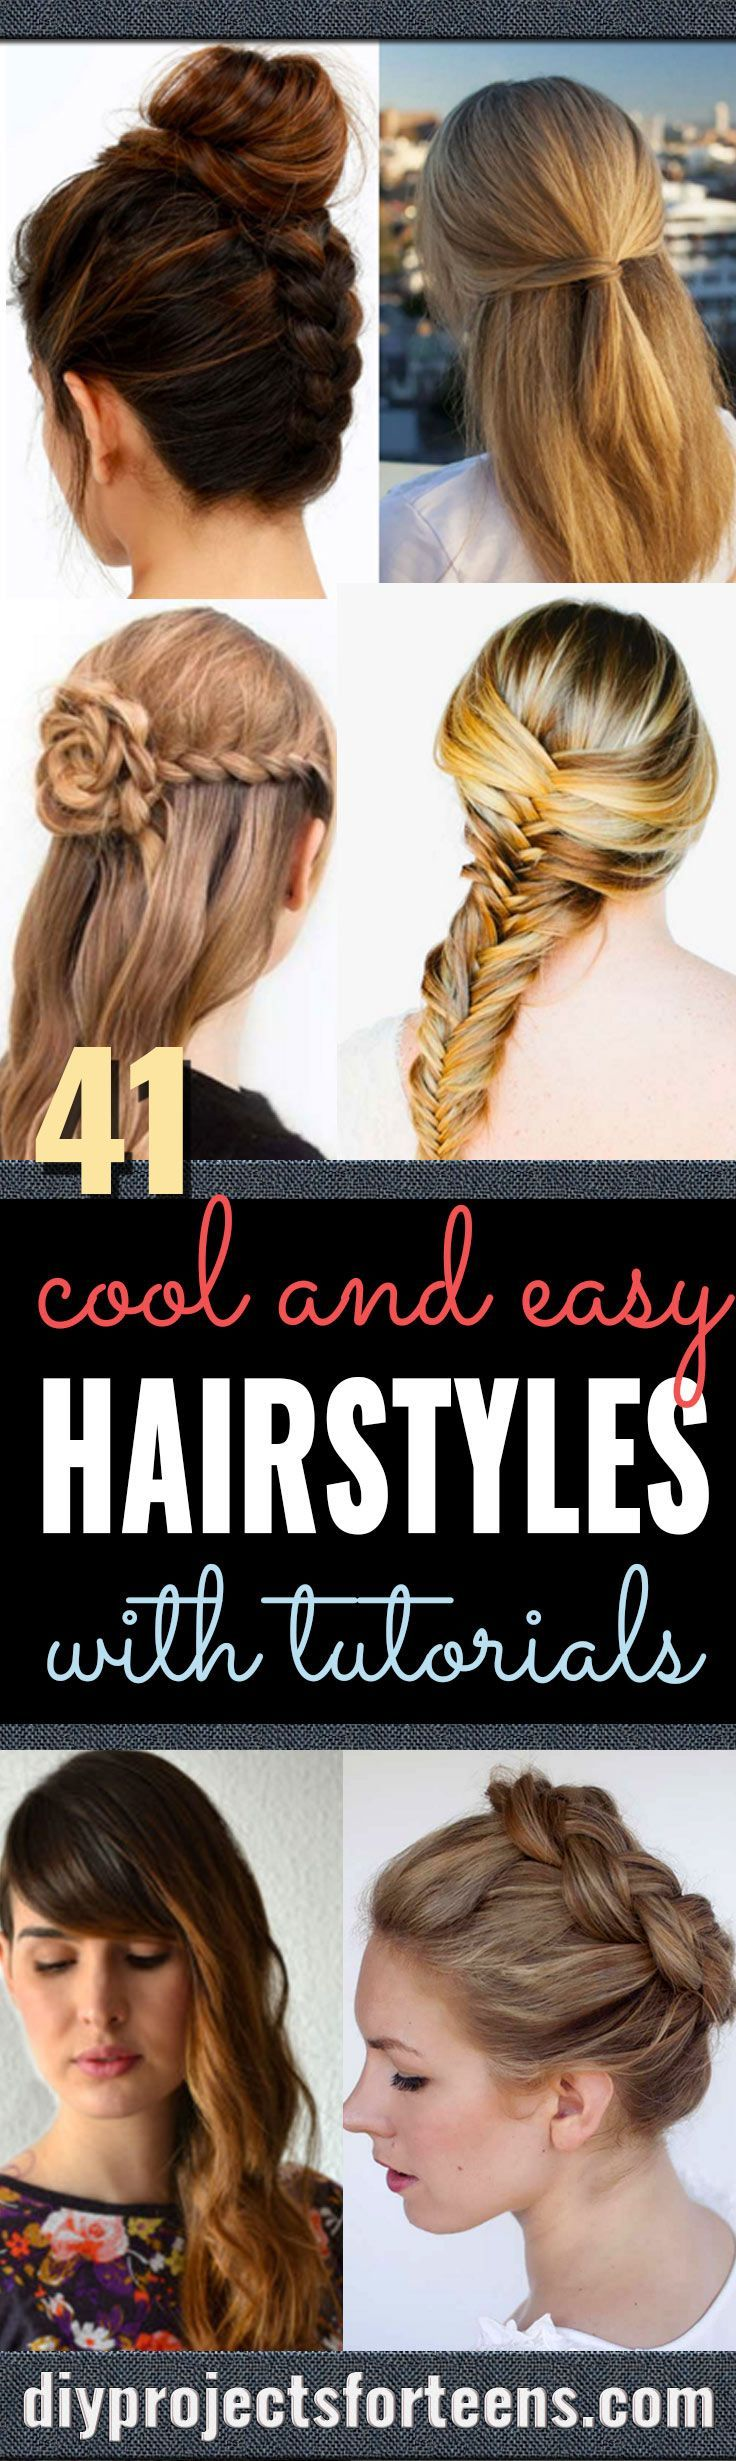 easy step by step hairstyles for school cool and easy